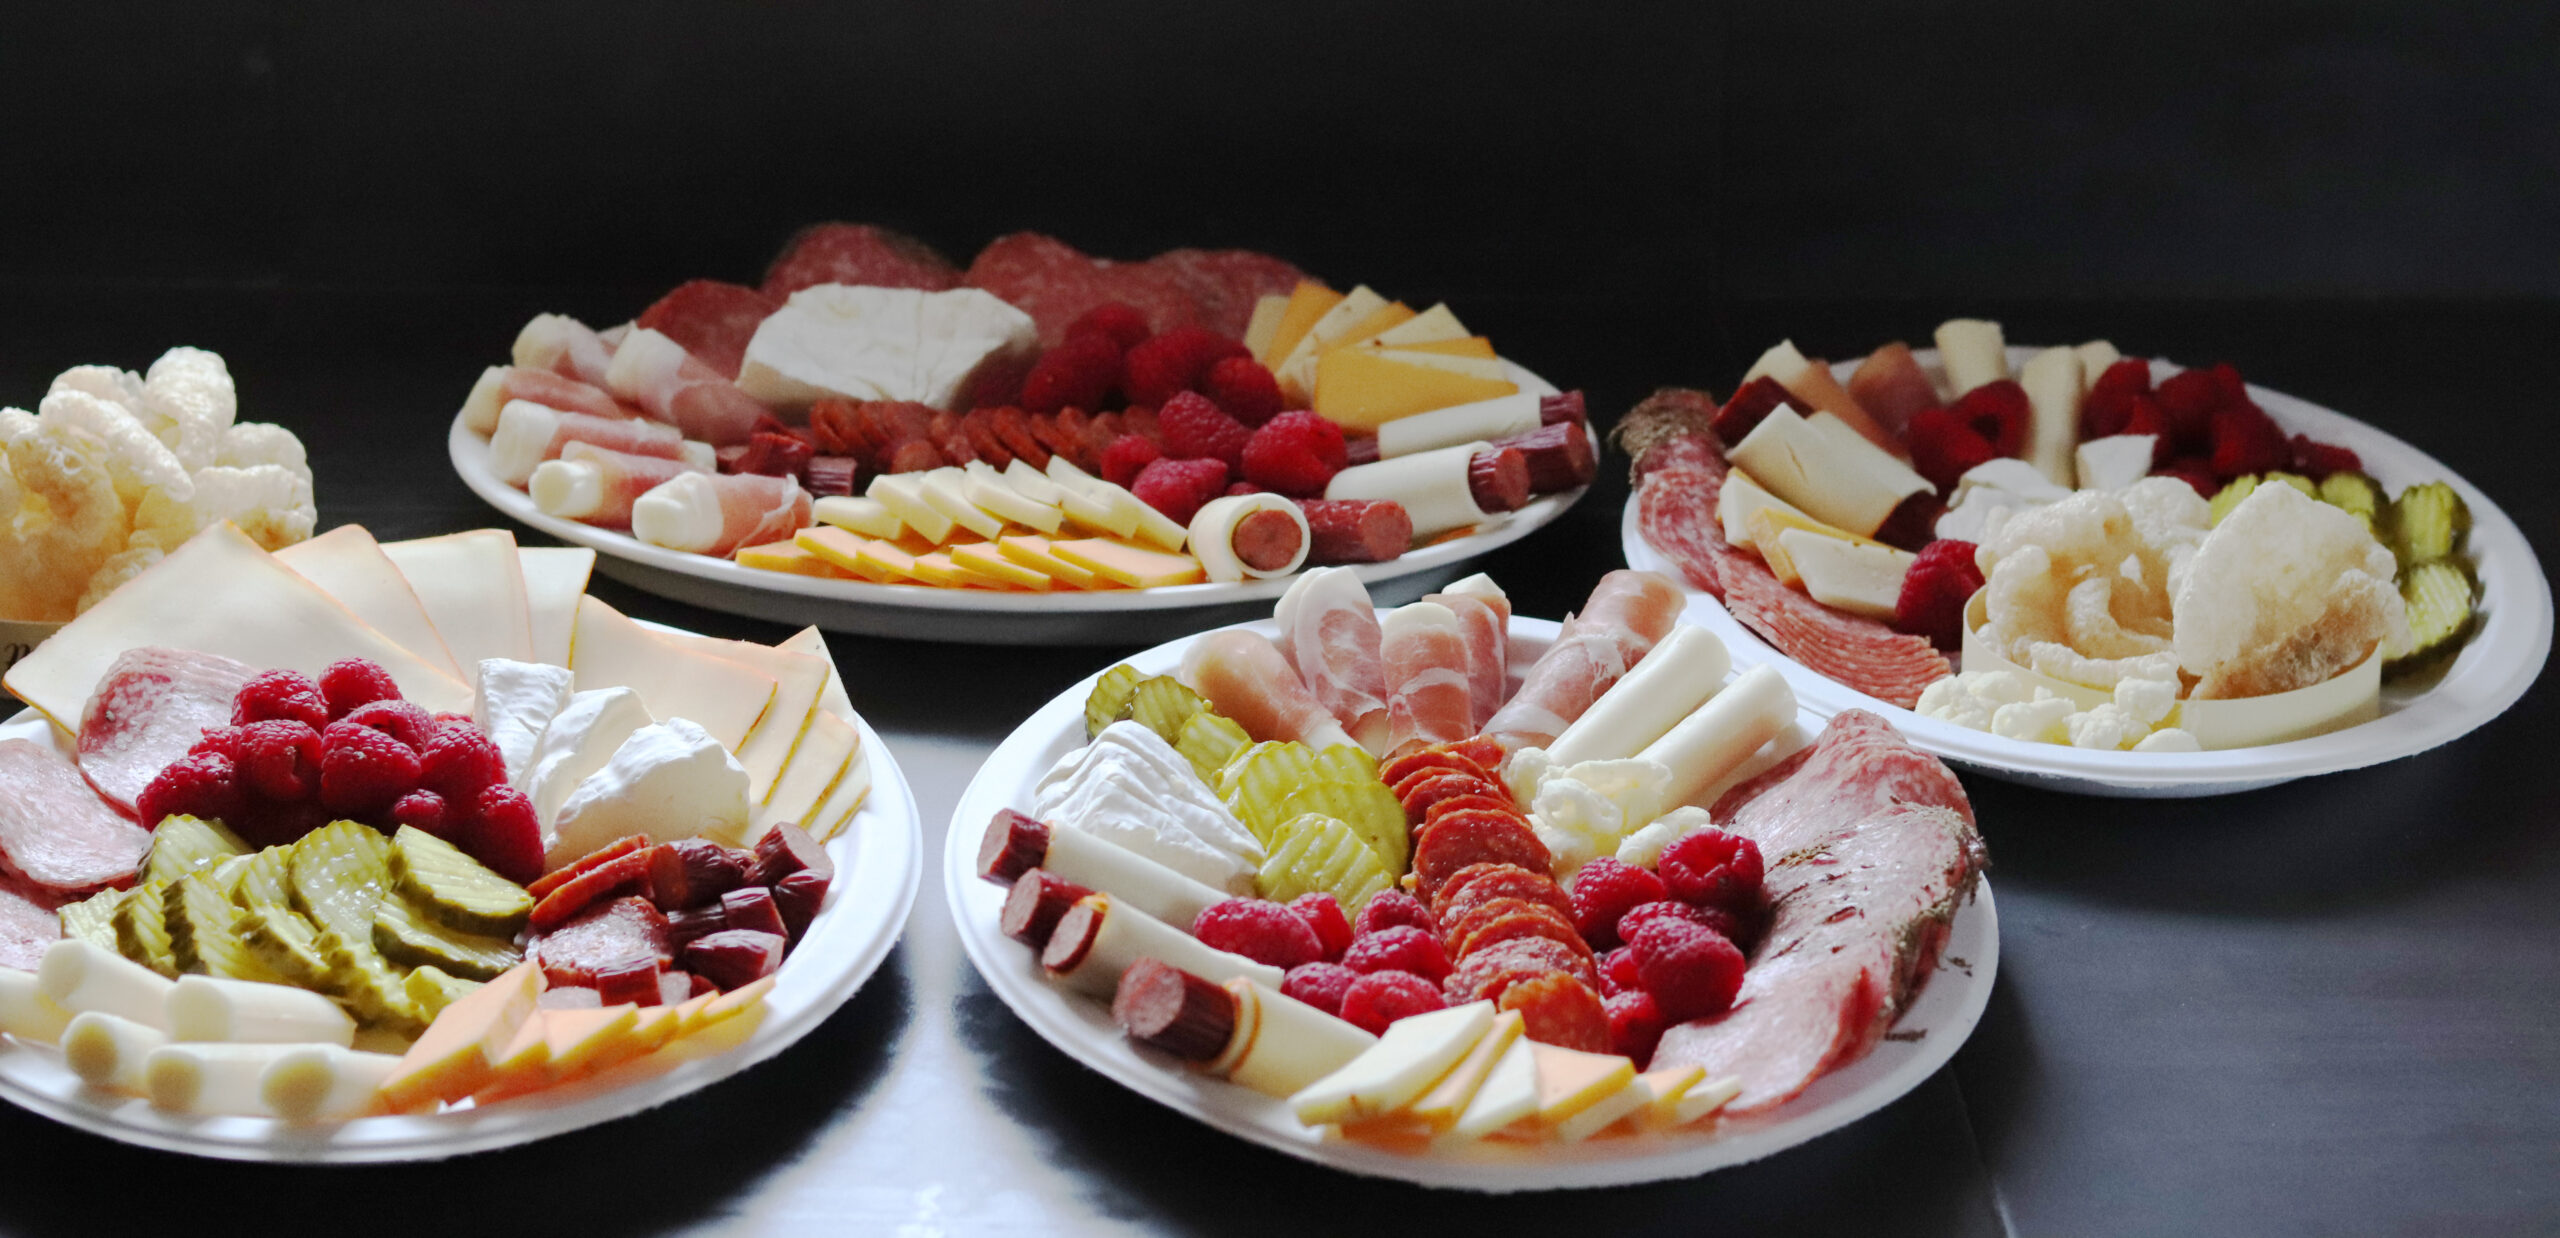 Low-Carb Meat and Cheese Platter